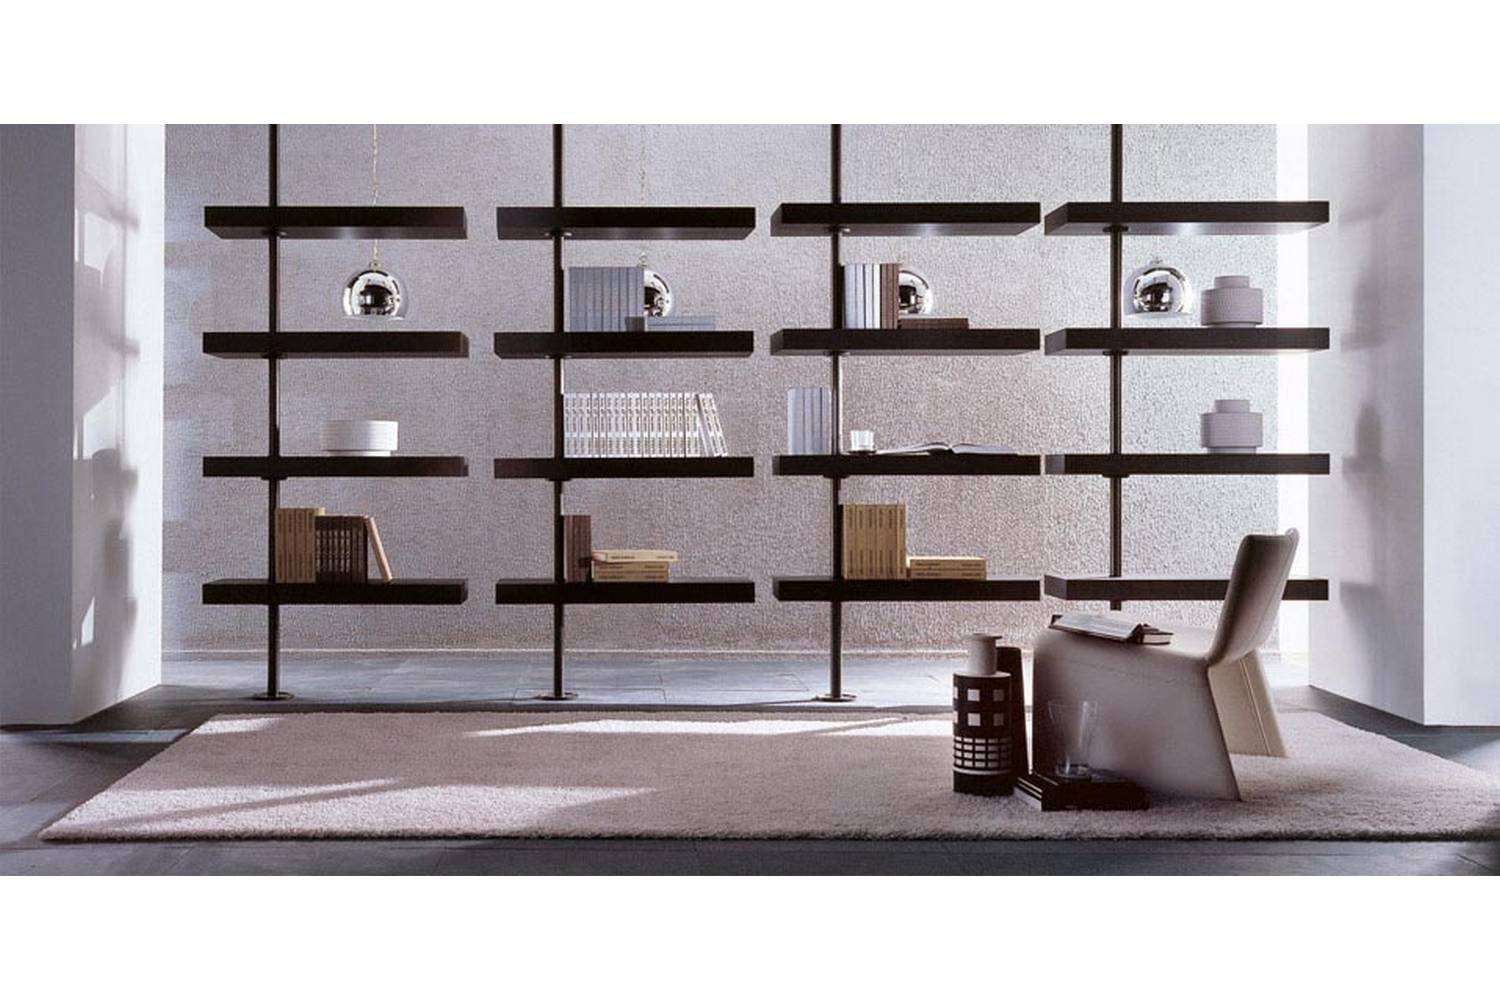 Domino Expo Bookcase by T. Colzani for Porada